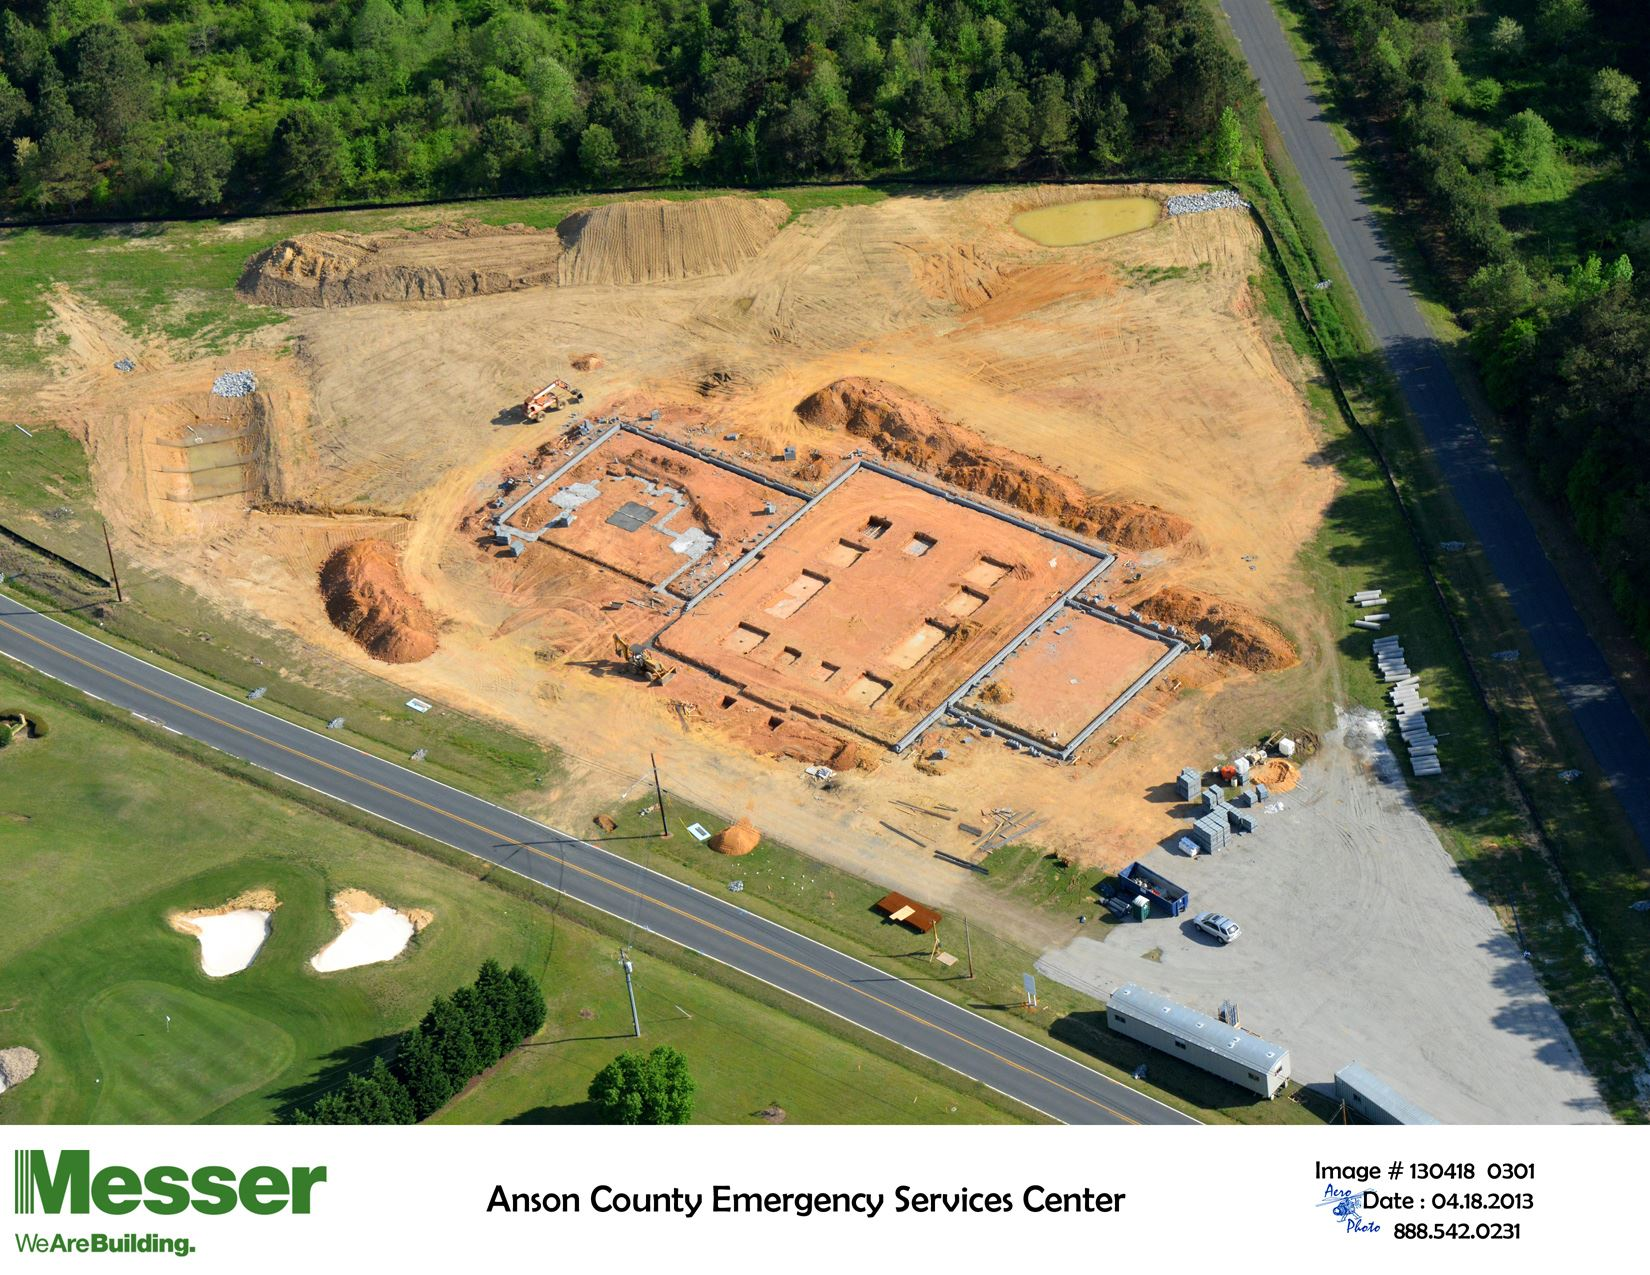 Aerial Photo of Anson County Emergency Services Center base of building constructed